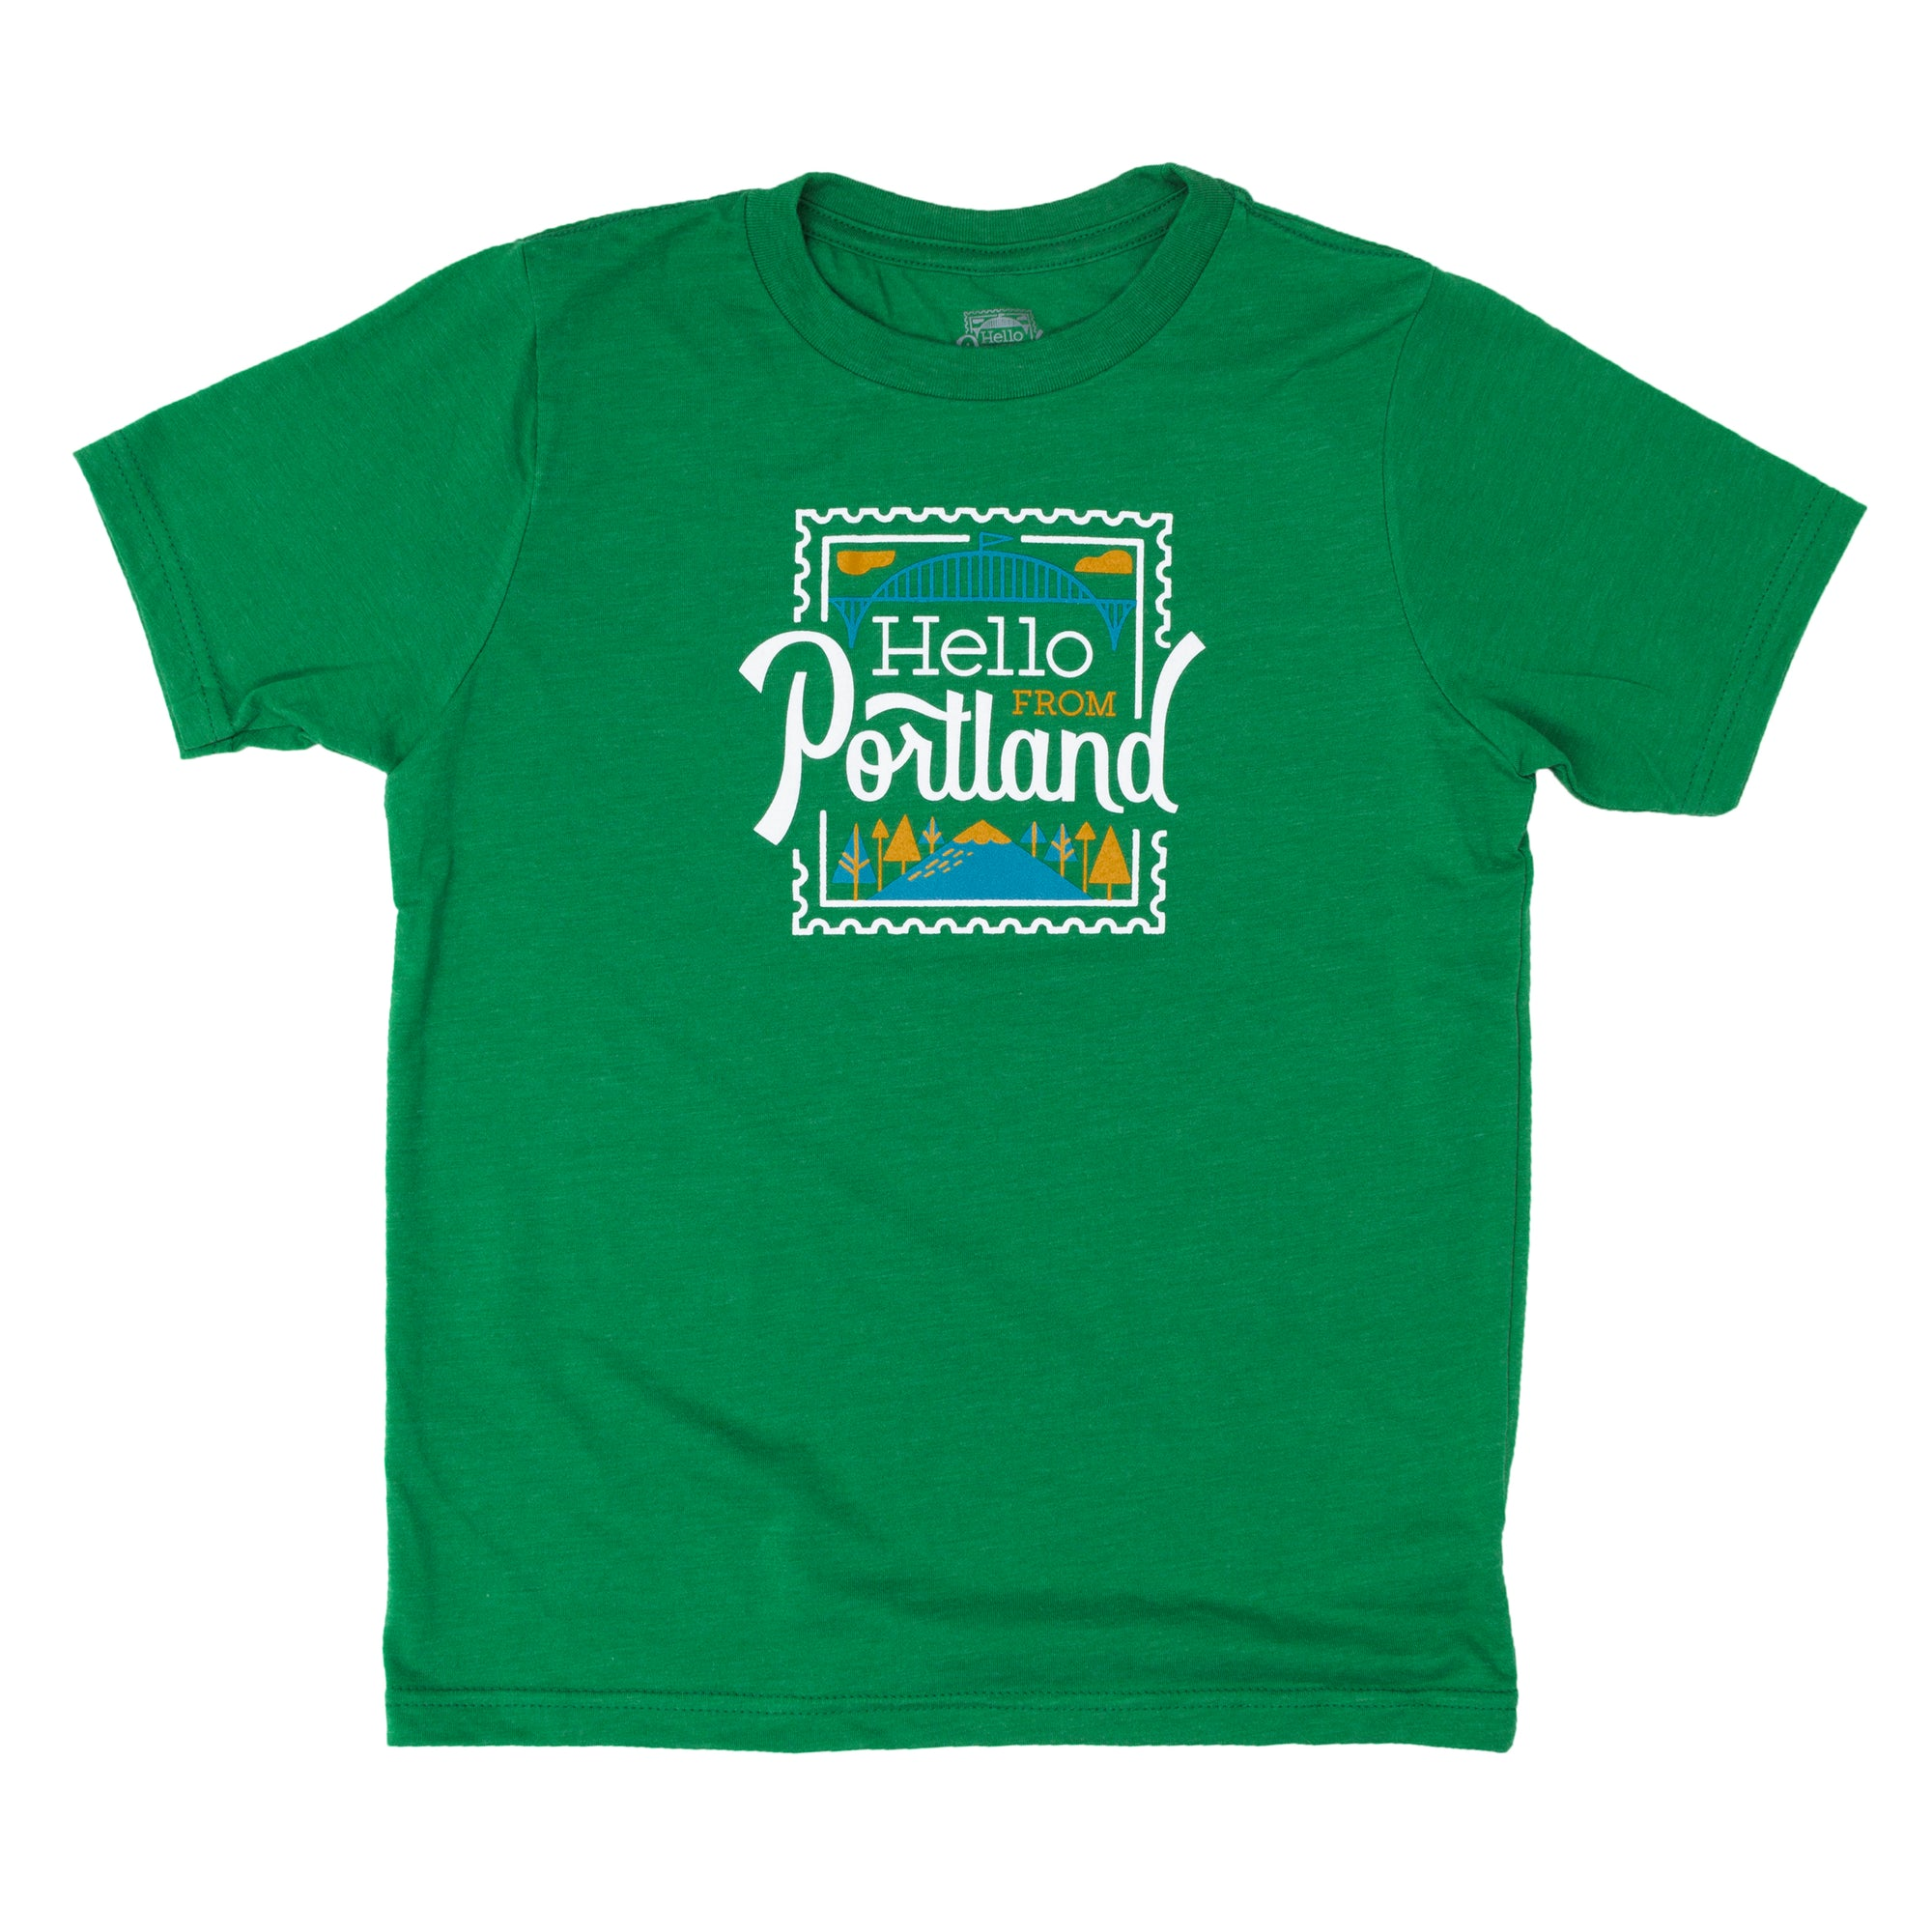 Kid's Green T-shirt with Hello From Portland Stamp Graphic.